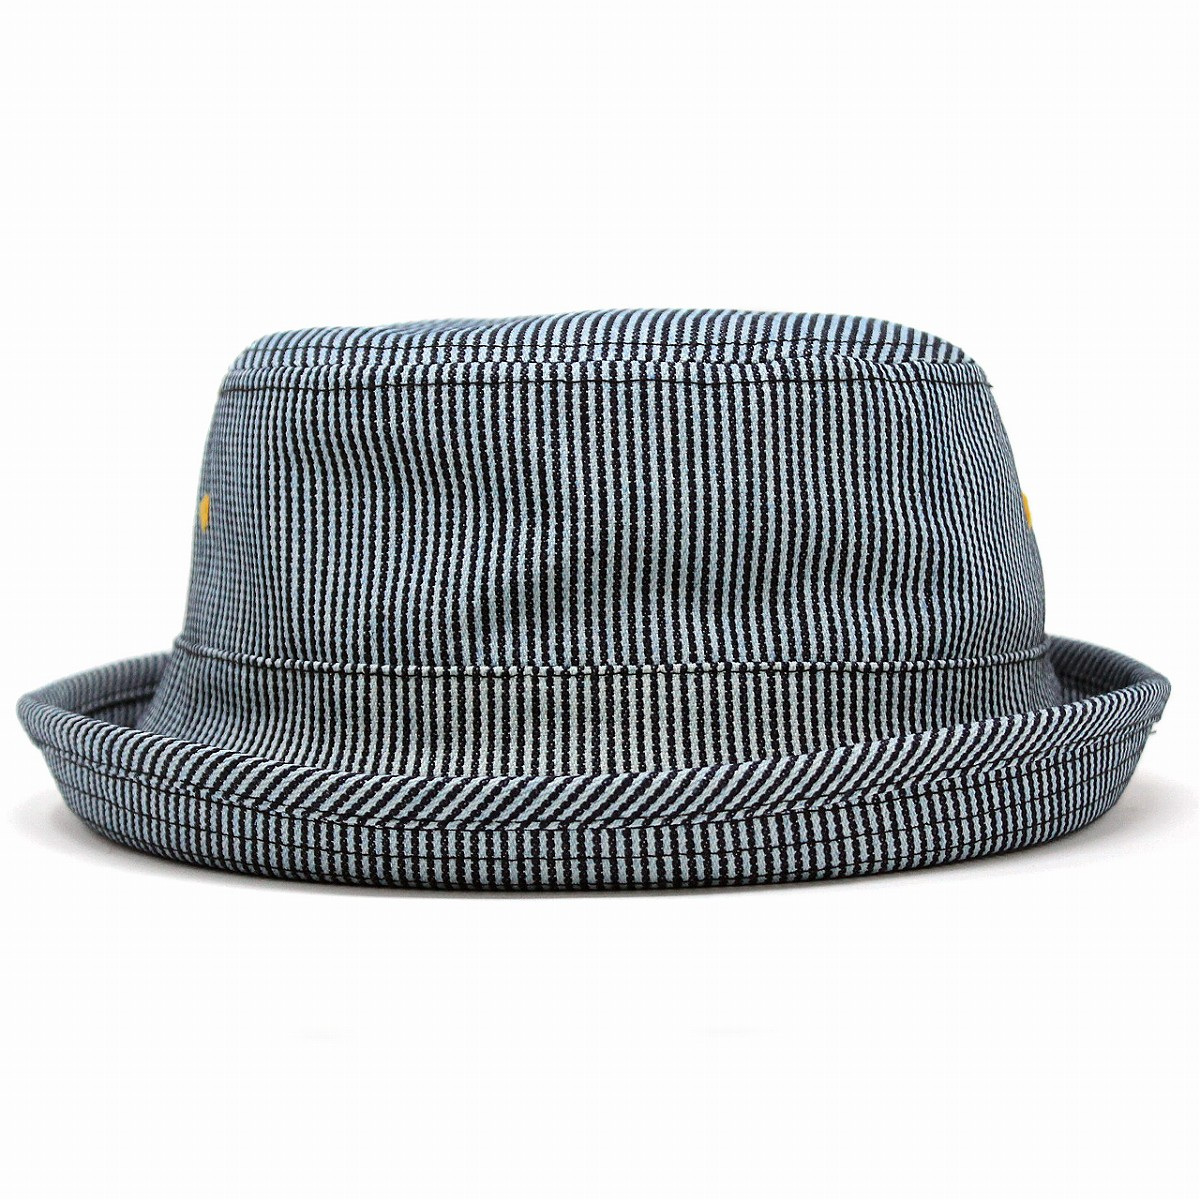 Accessoryo Unisex Grey Wool Pork Pie Hat Available in a Selection of Sizes